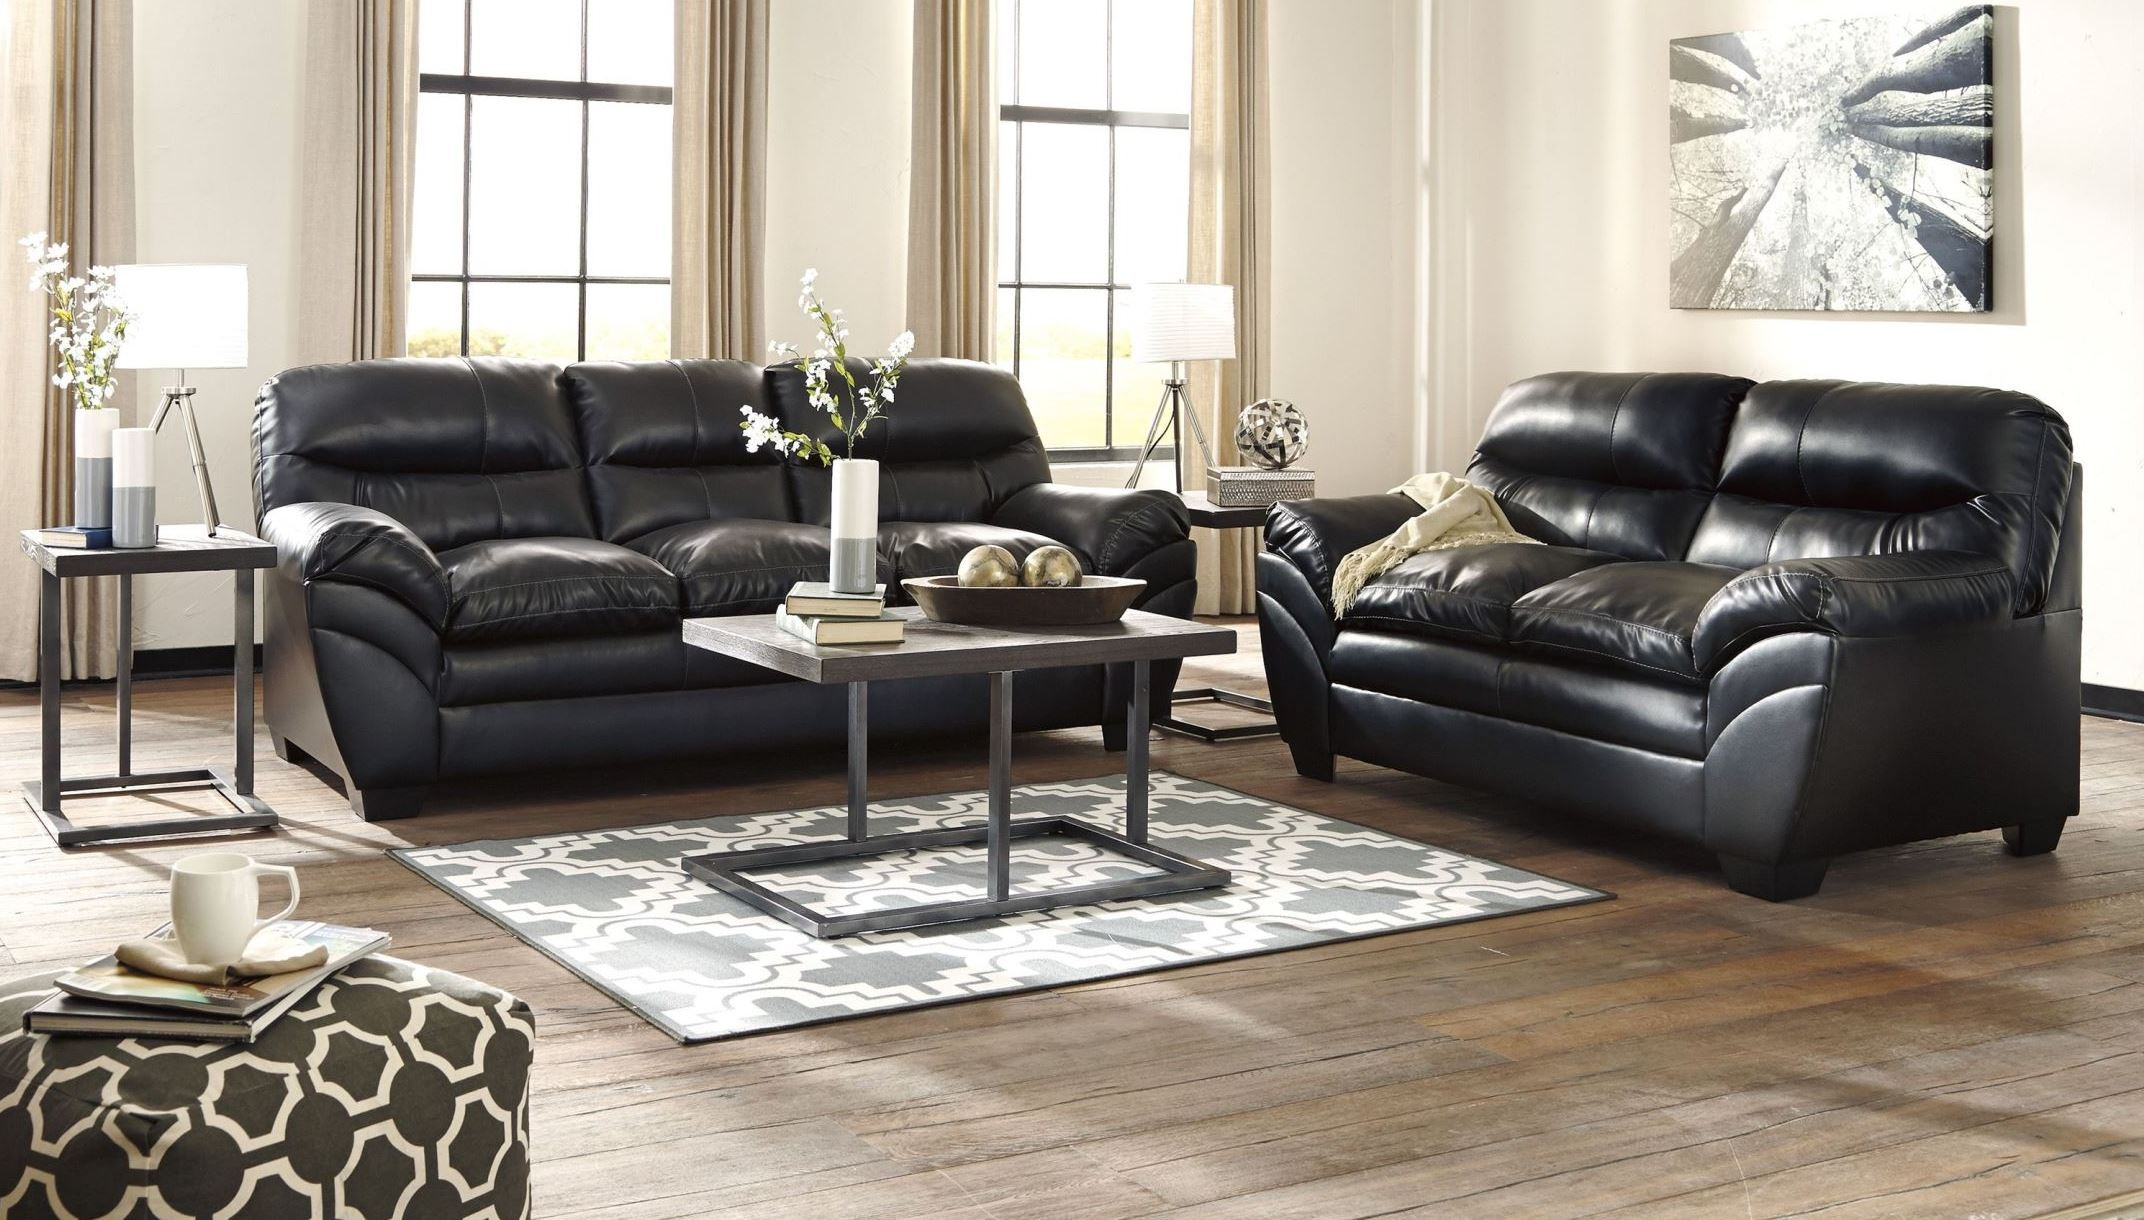 Tassler durablend black living room set from ashley for Black living room furniture